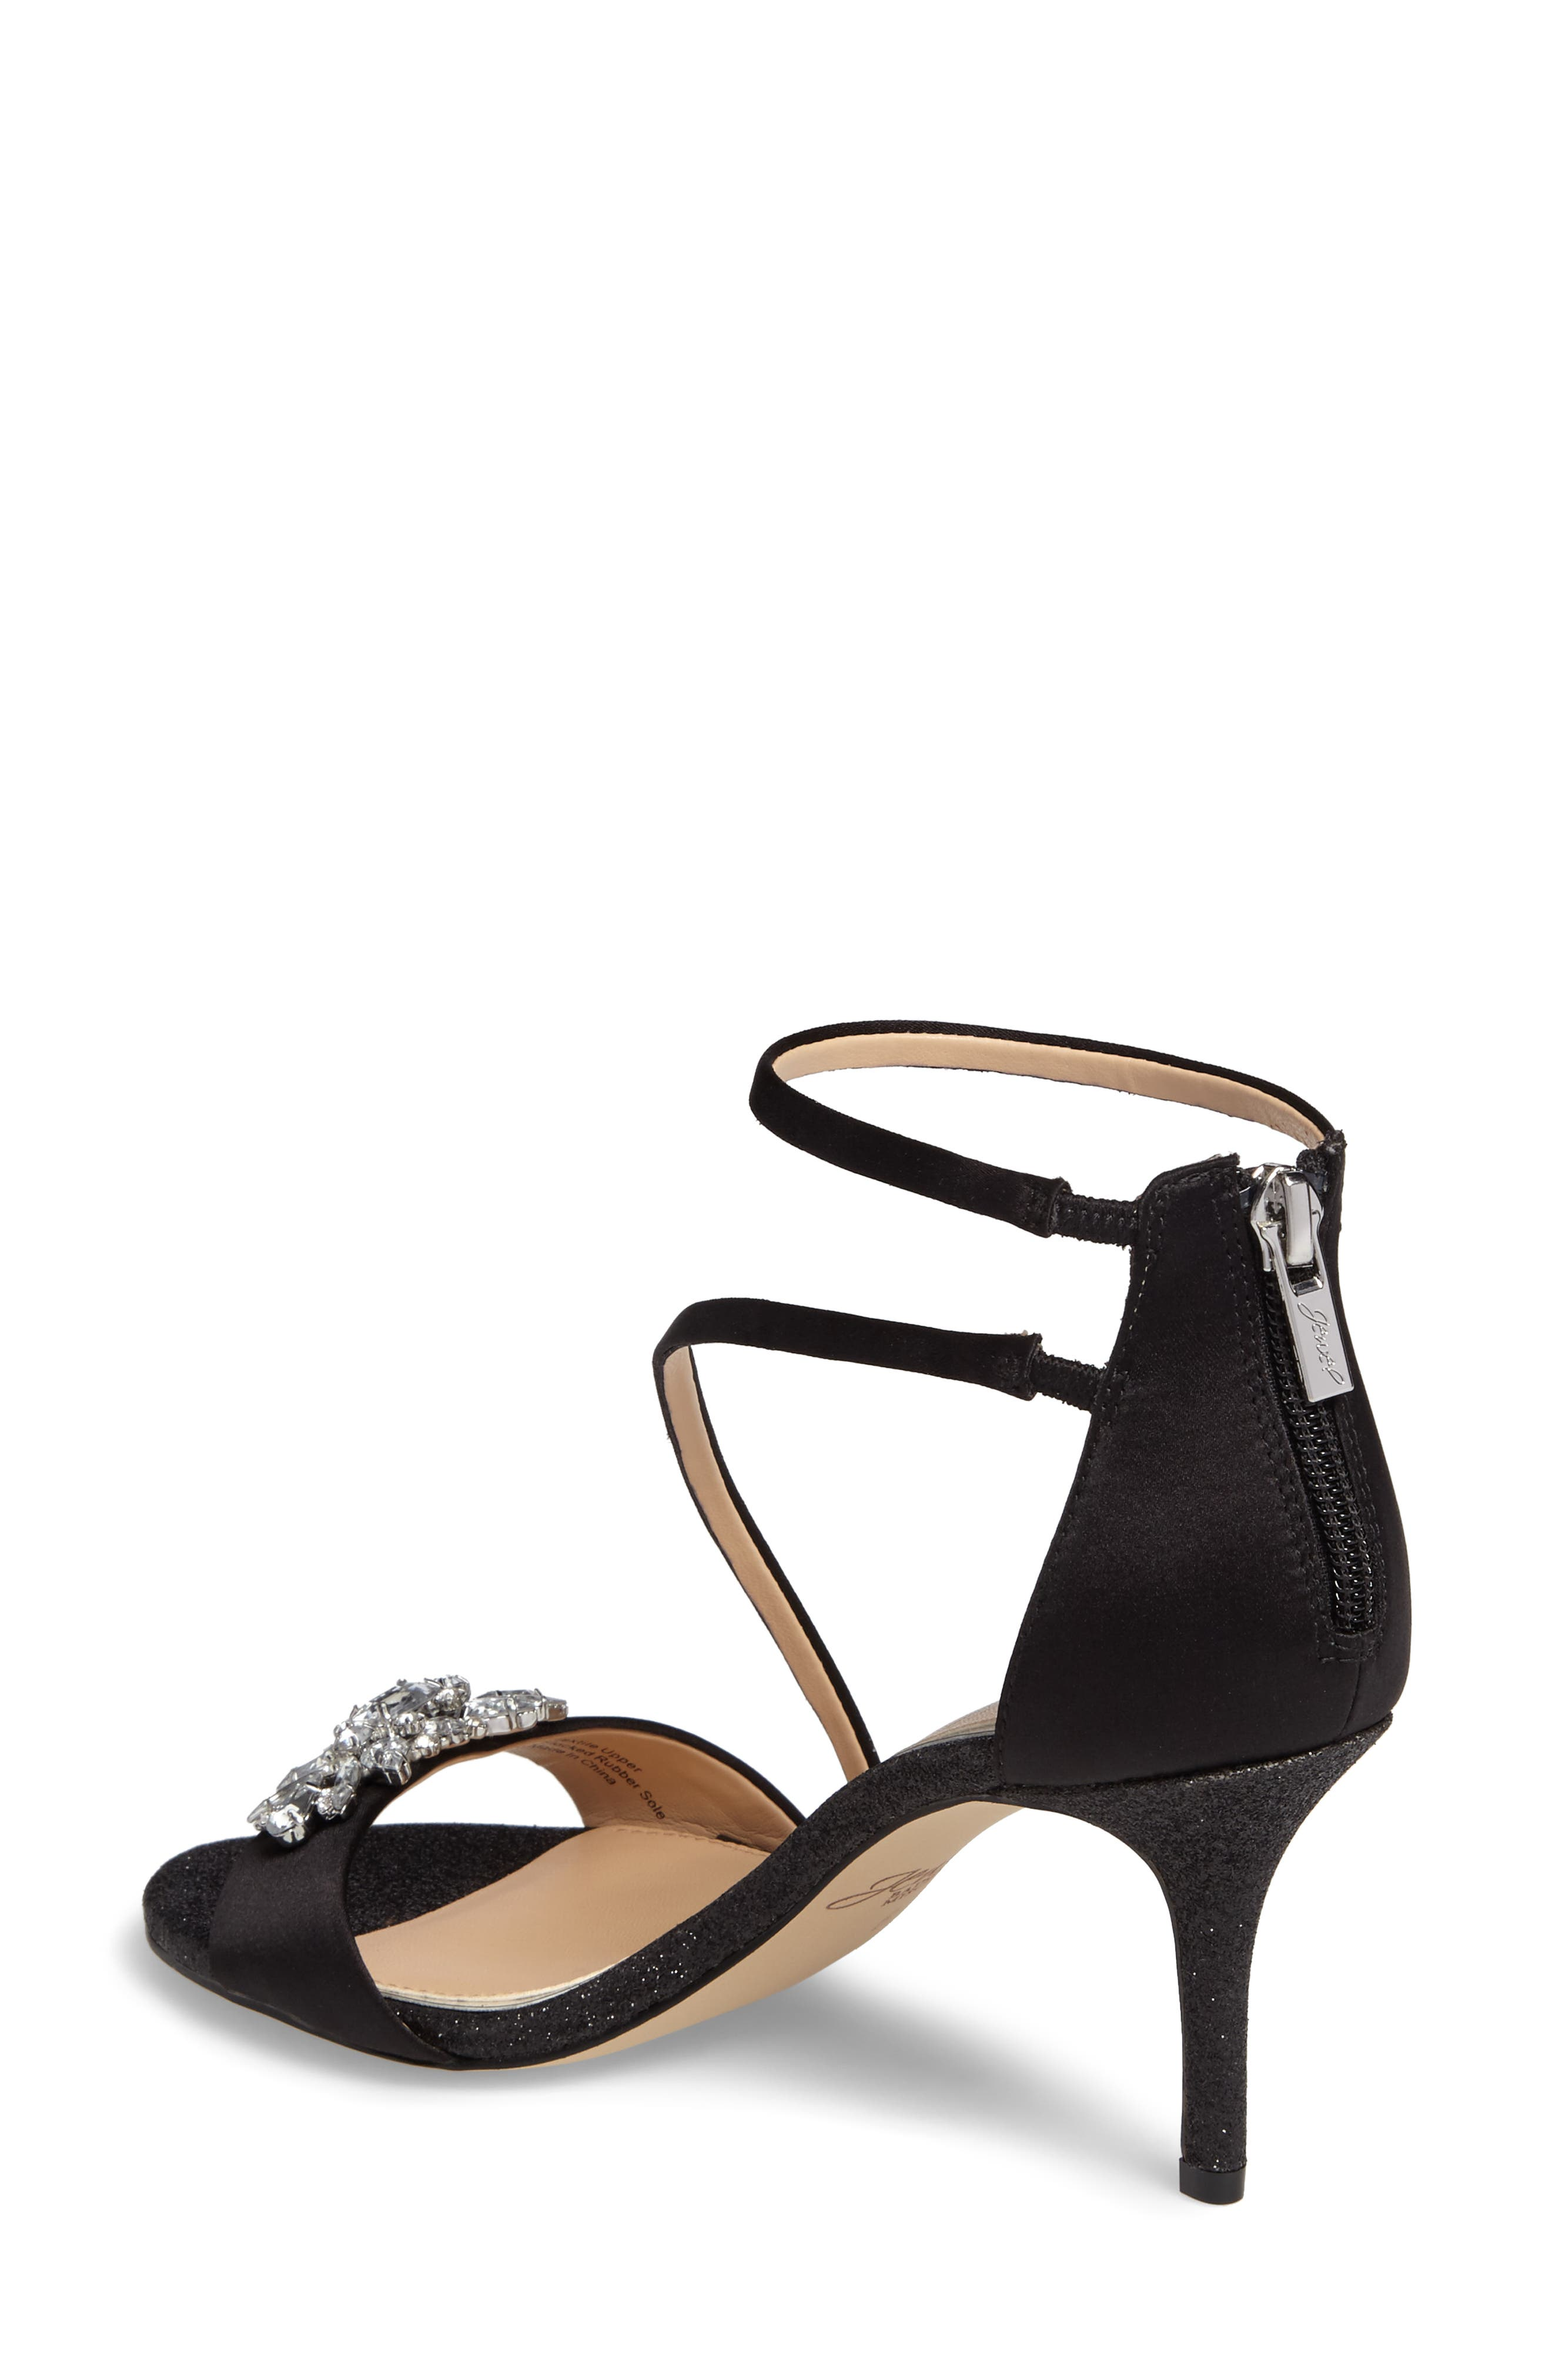 Leighton Embellished Strappy Sandal,                             Alternate thumbnail 2, color,                             015